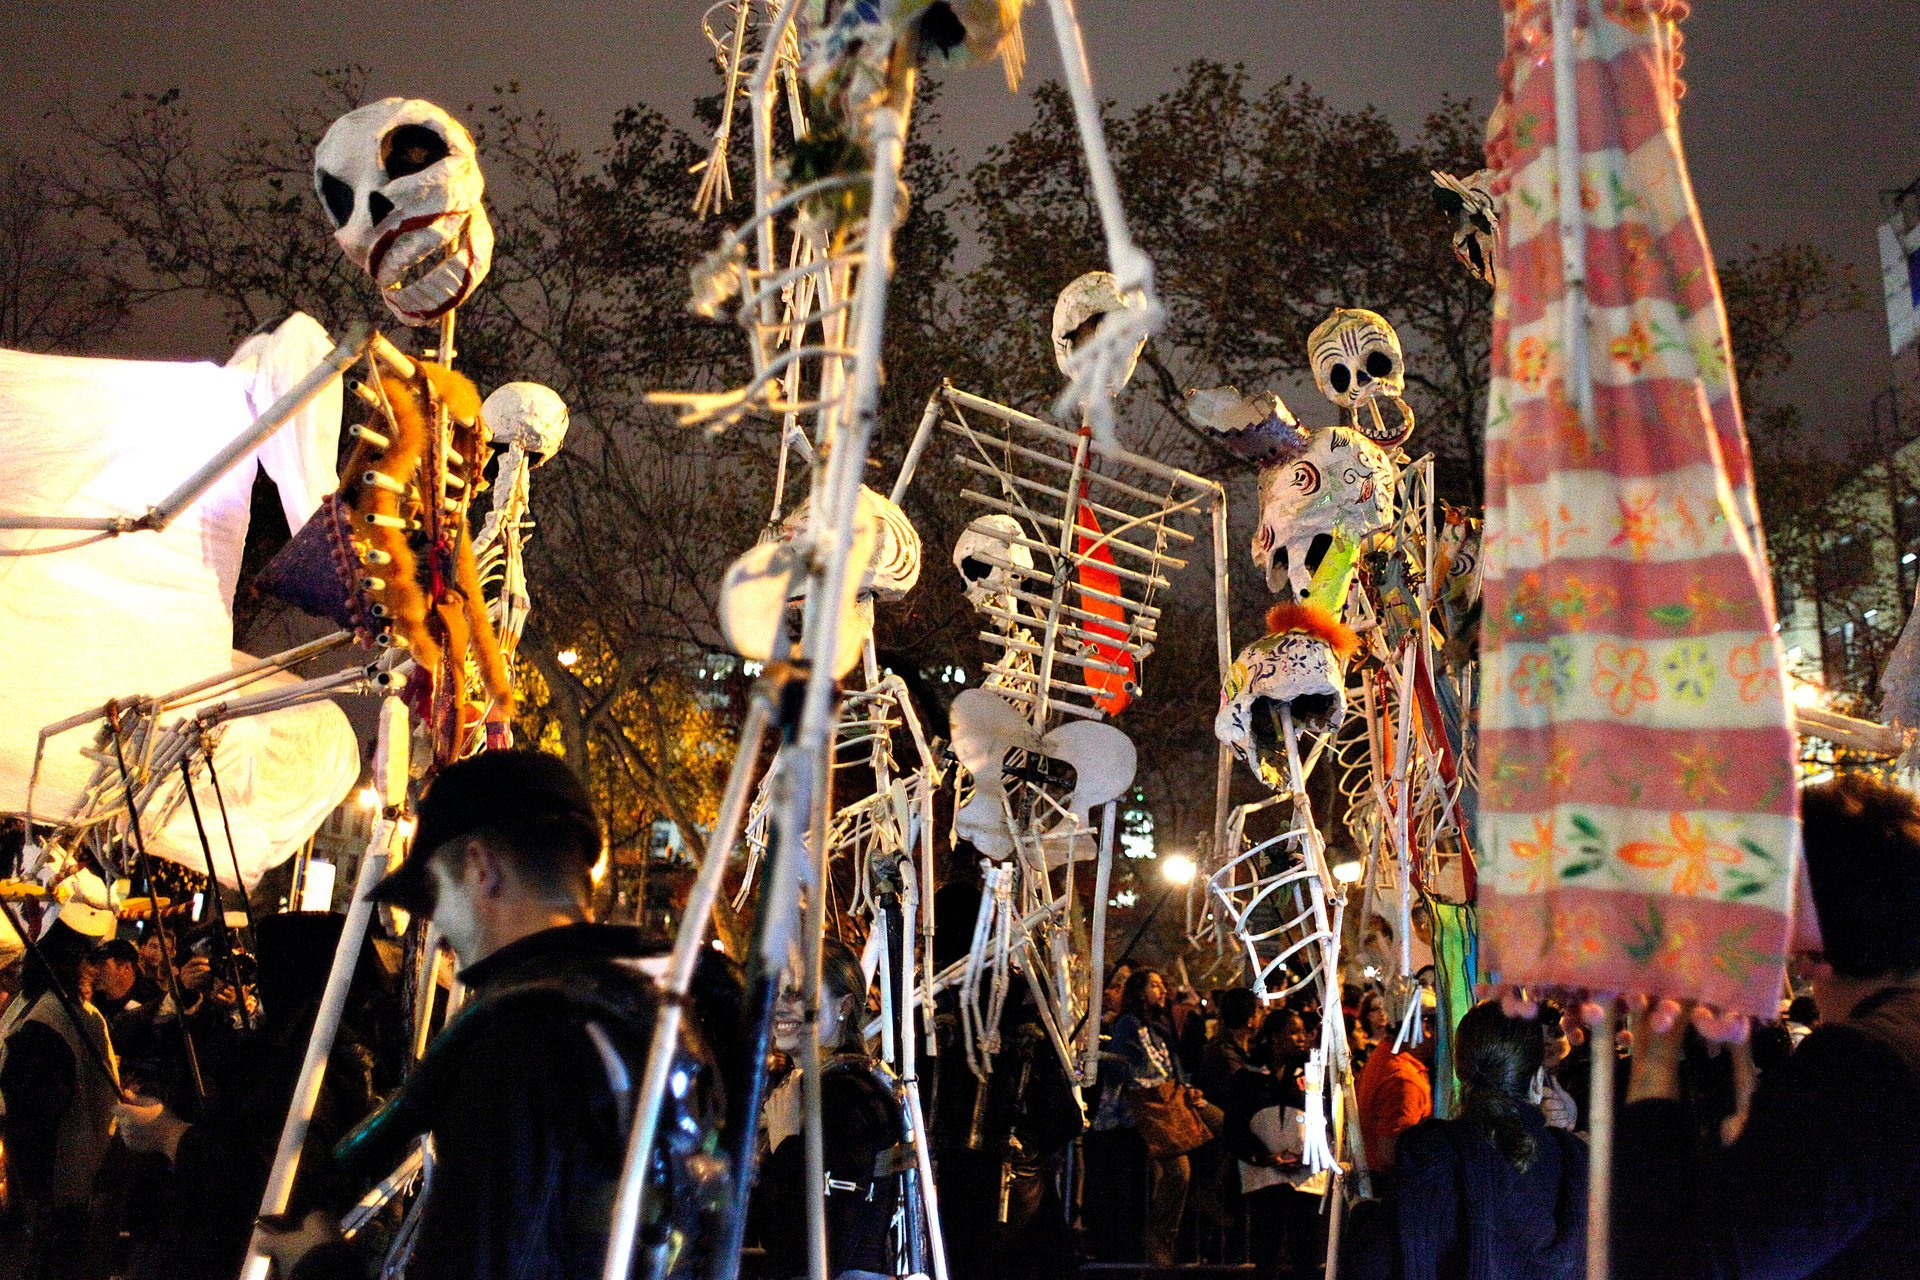 Village Halloween Parade in New York 2019 - Best Time